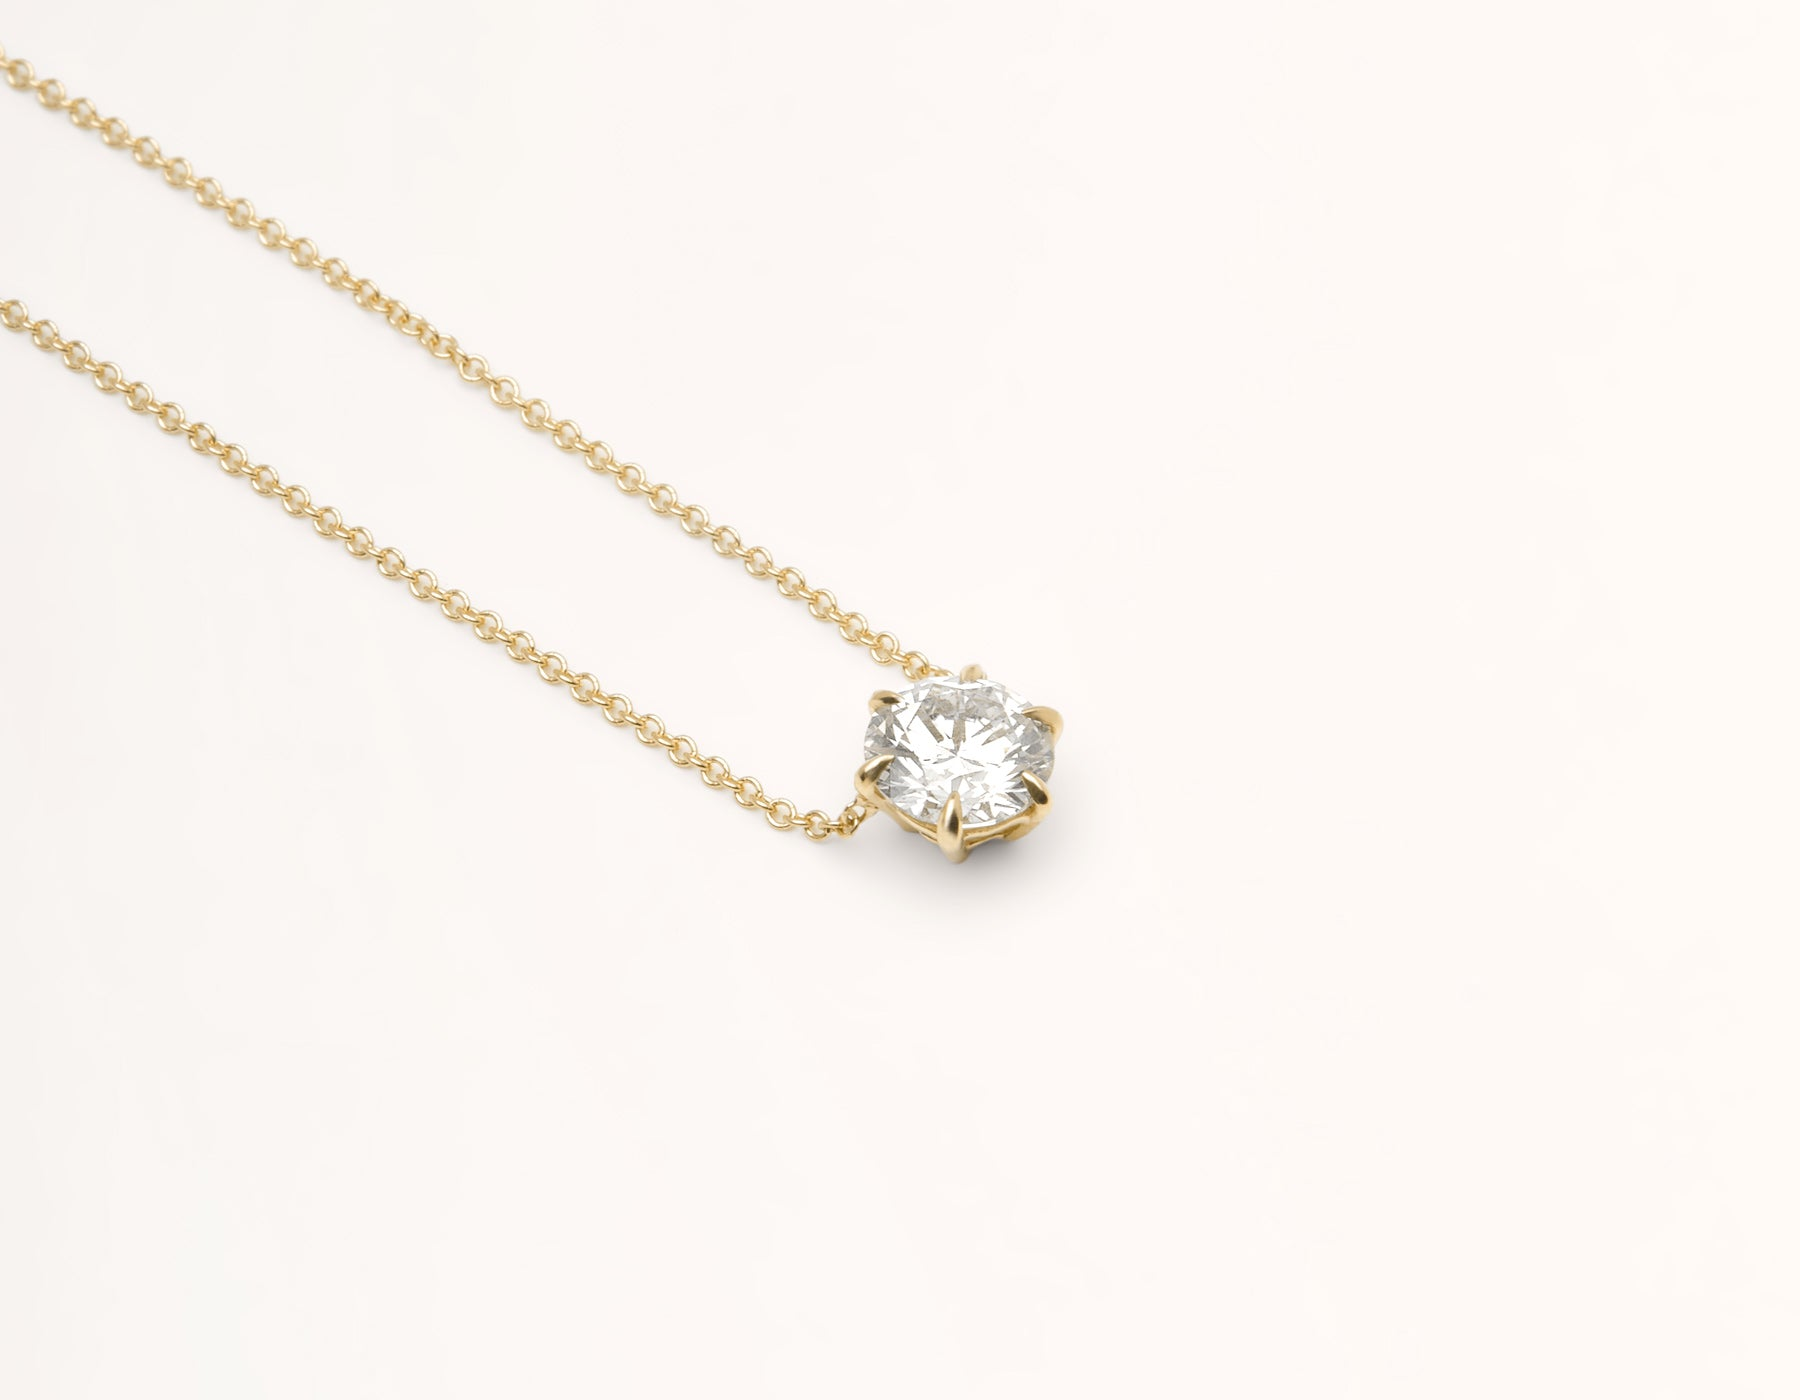 Classic minimalist 18k solid gold 1.0 carat Round Brilliant Cut Diamond Necklace on delicate chain Vrai & Oro, 18K Yellow Gold